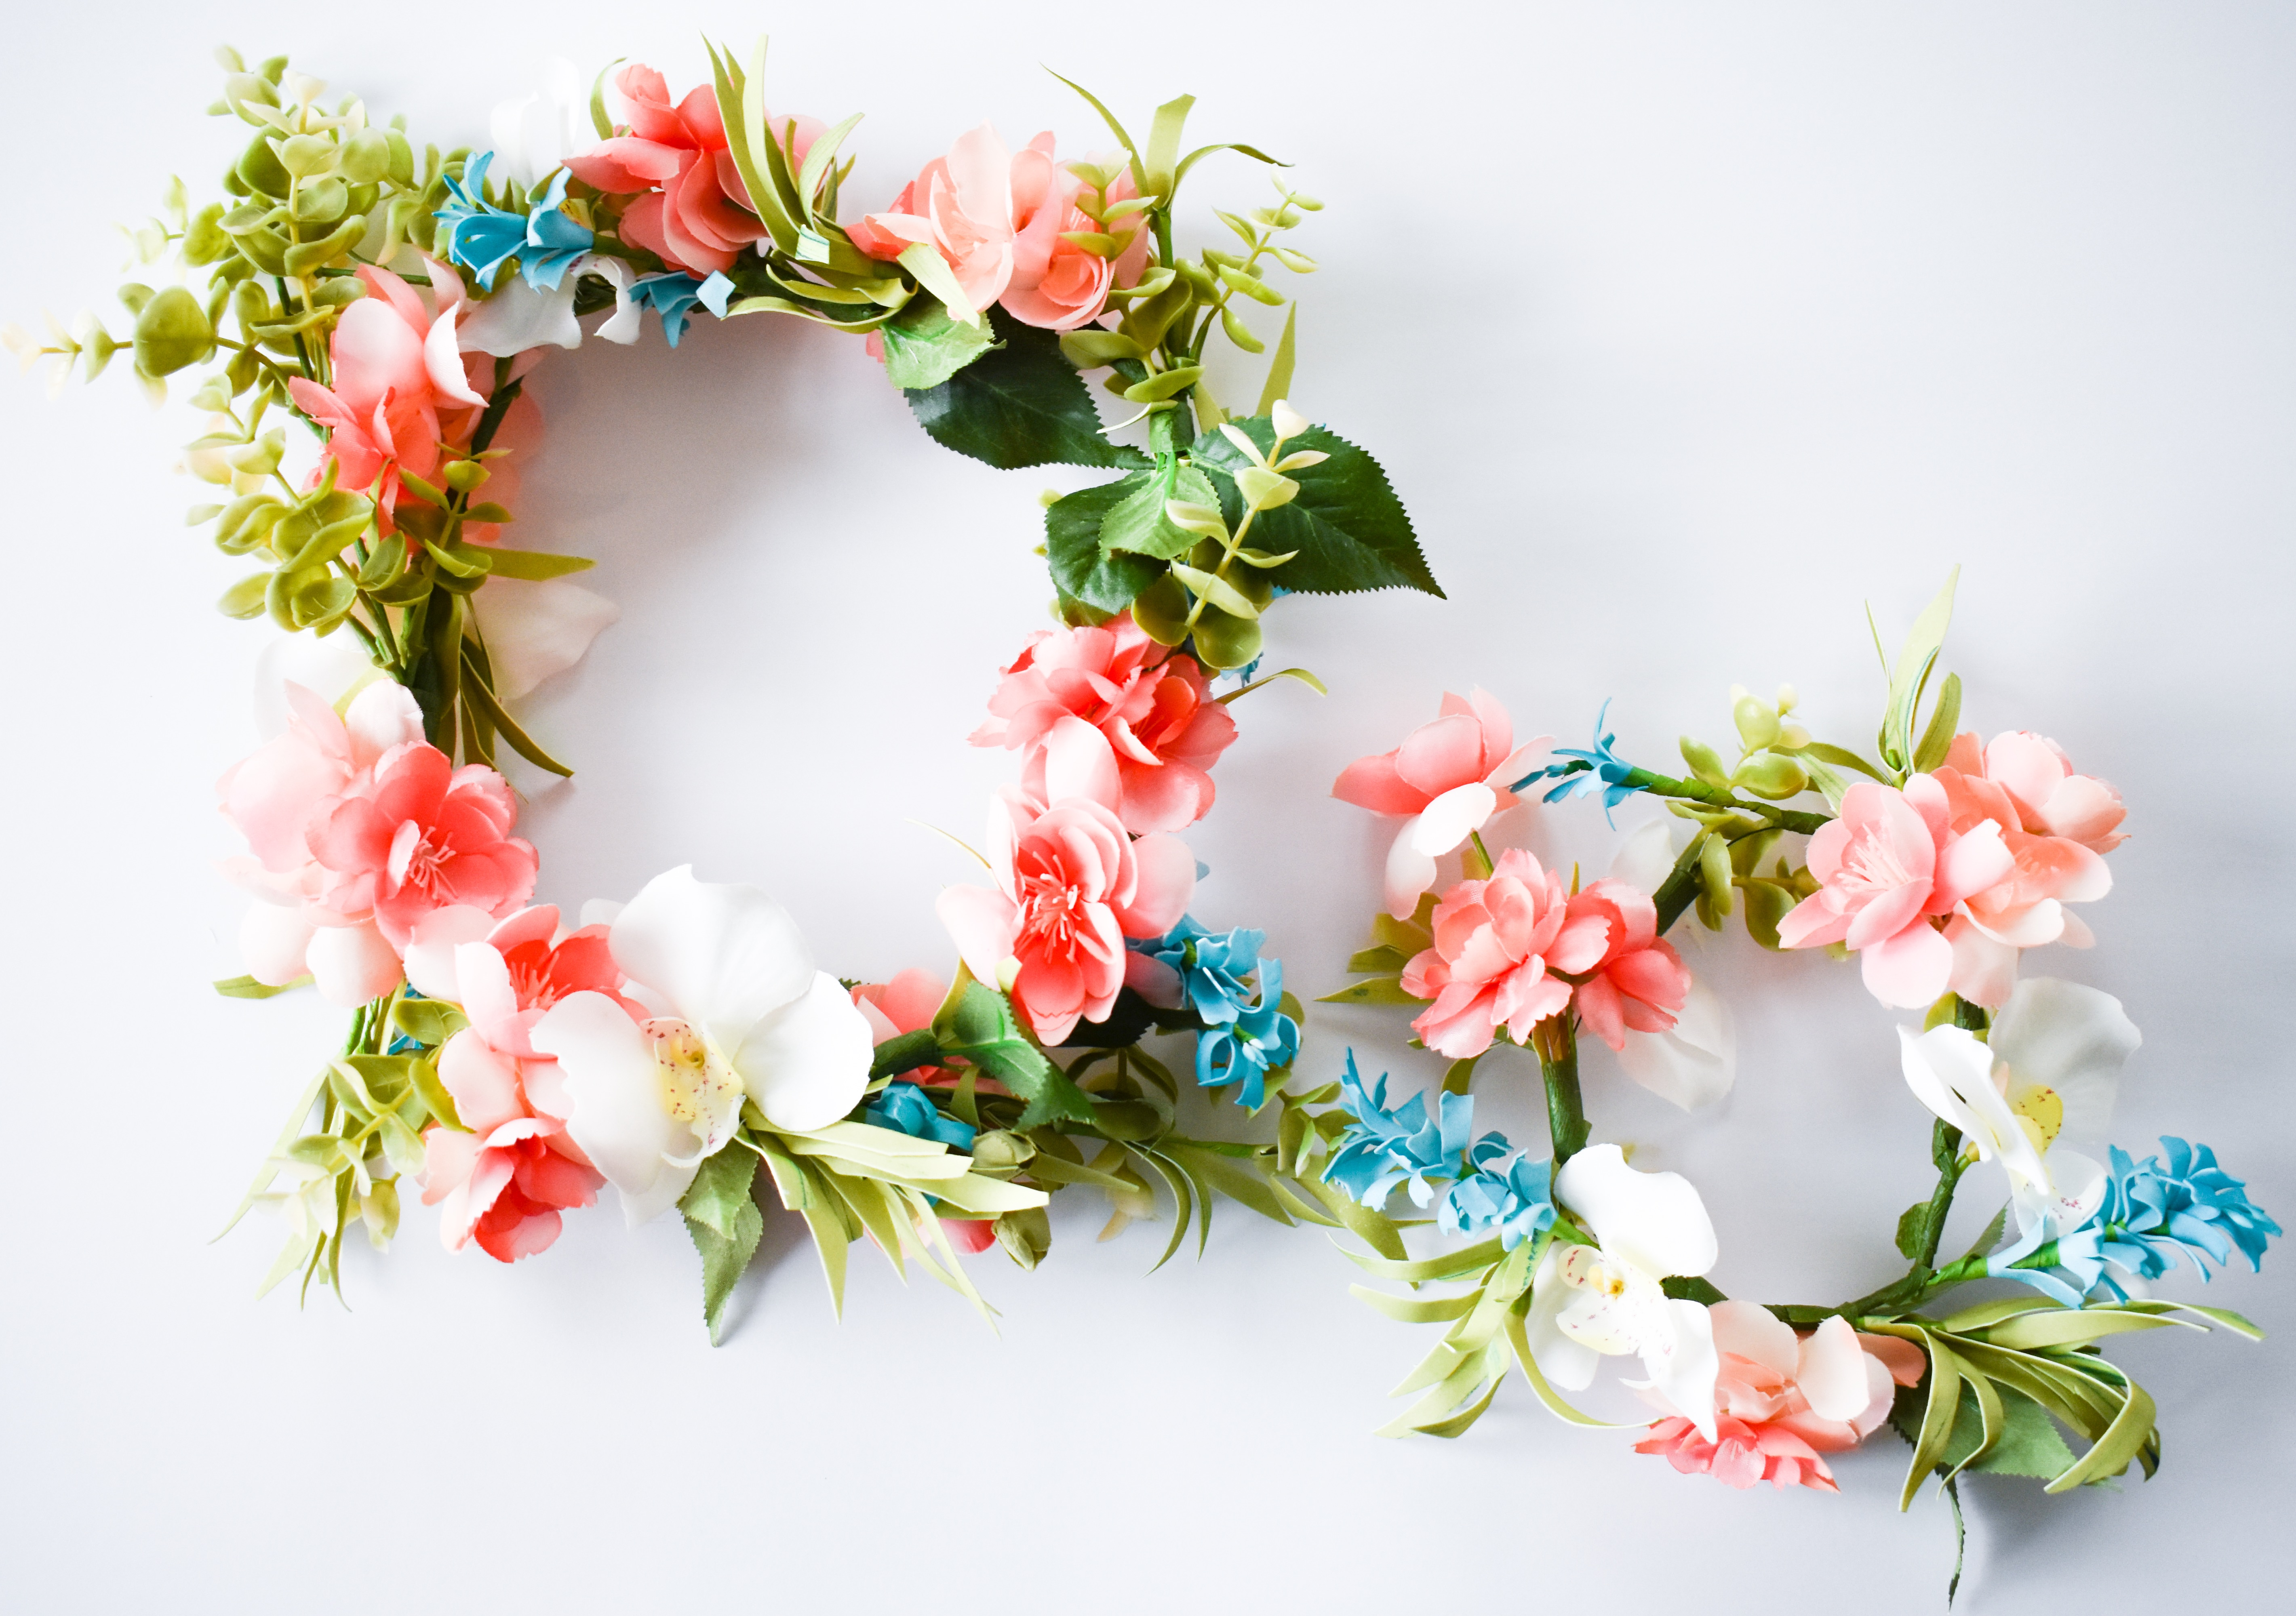 How To Make A Flower Crown With Fake Flowers [Easy DIY